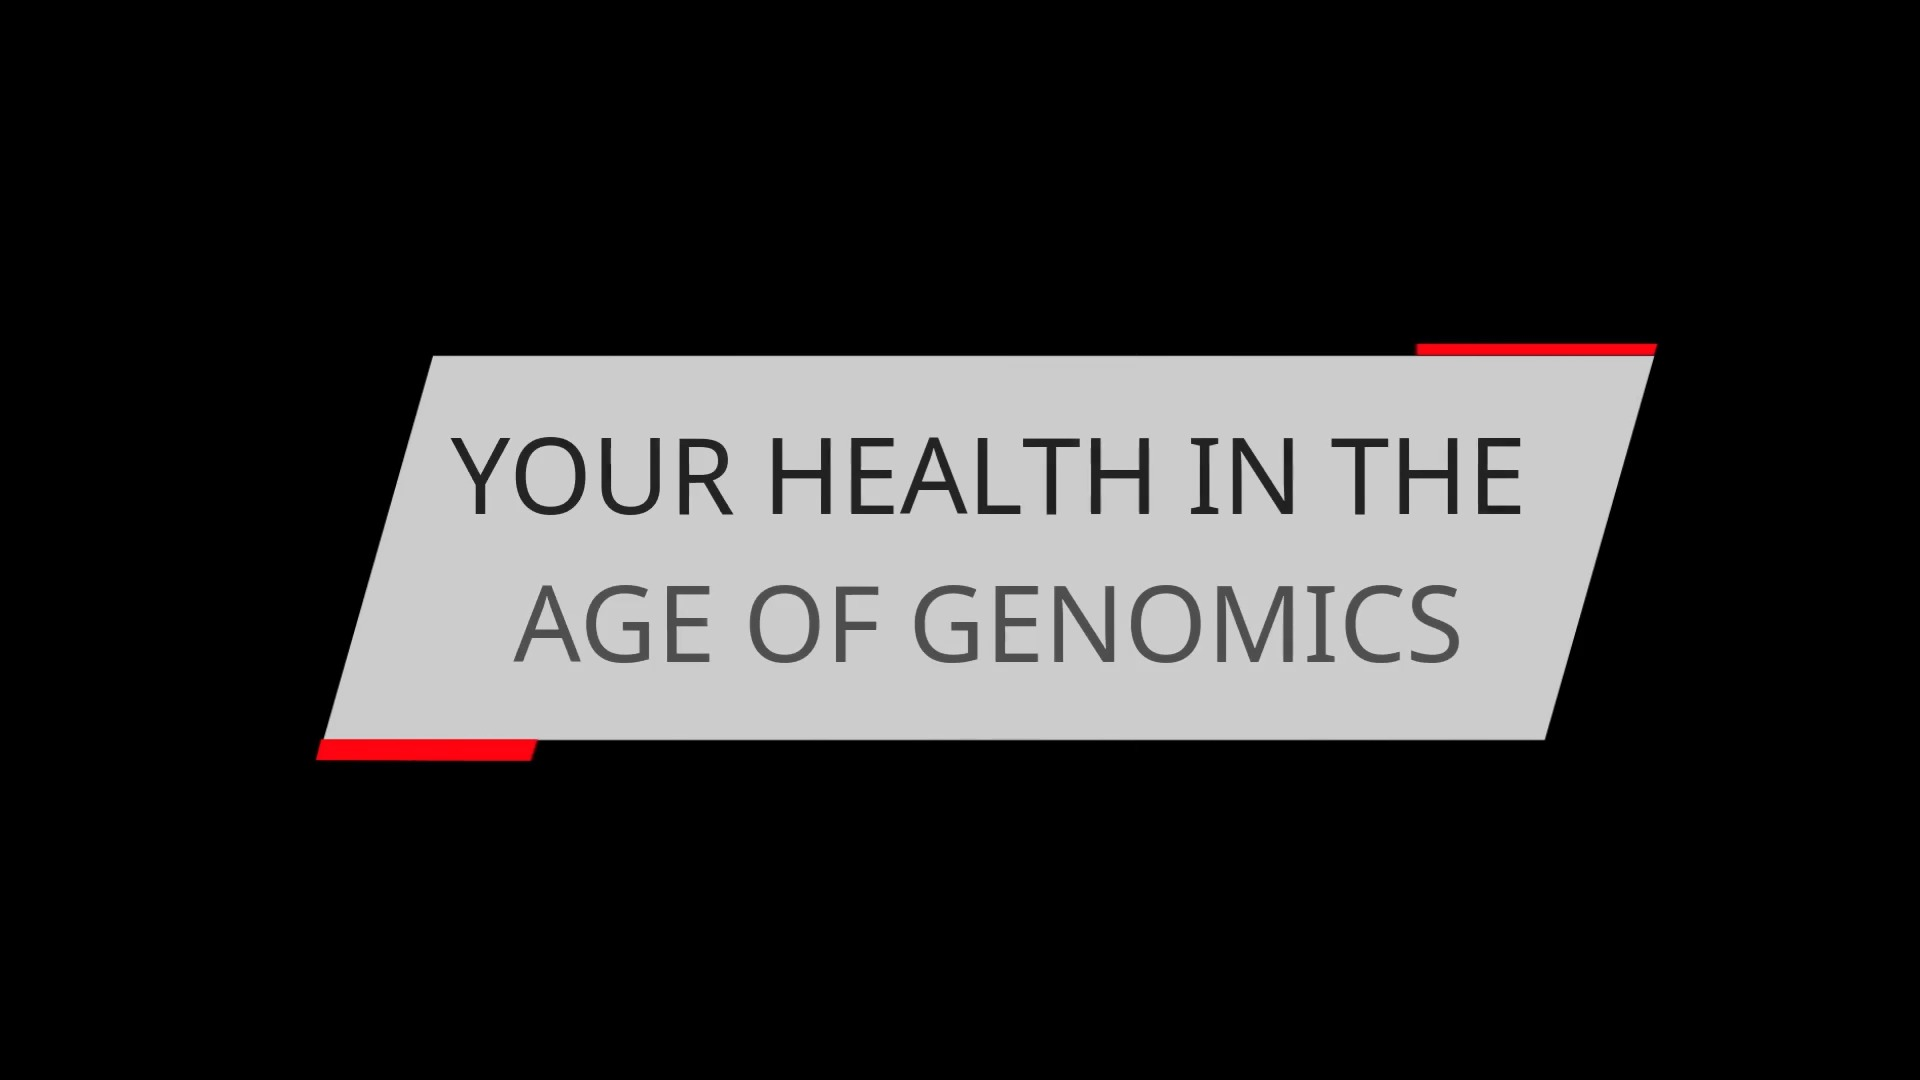 YOUR HEALTH IN THE AGE OF GENOMICS